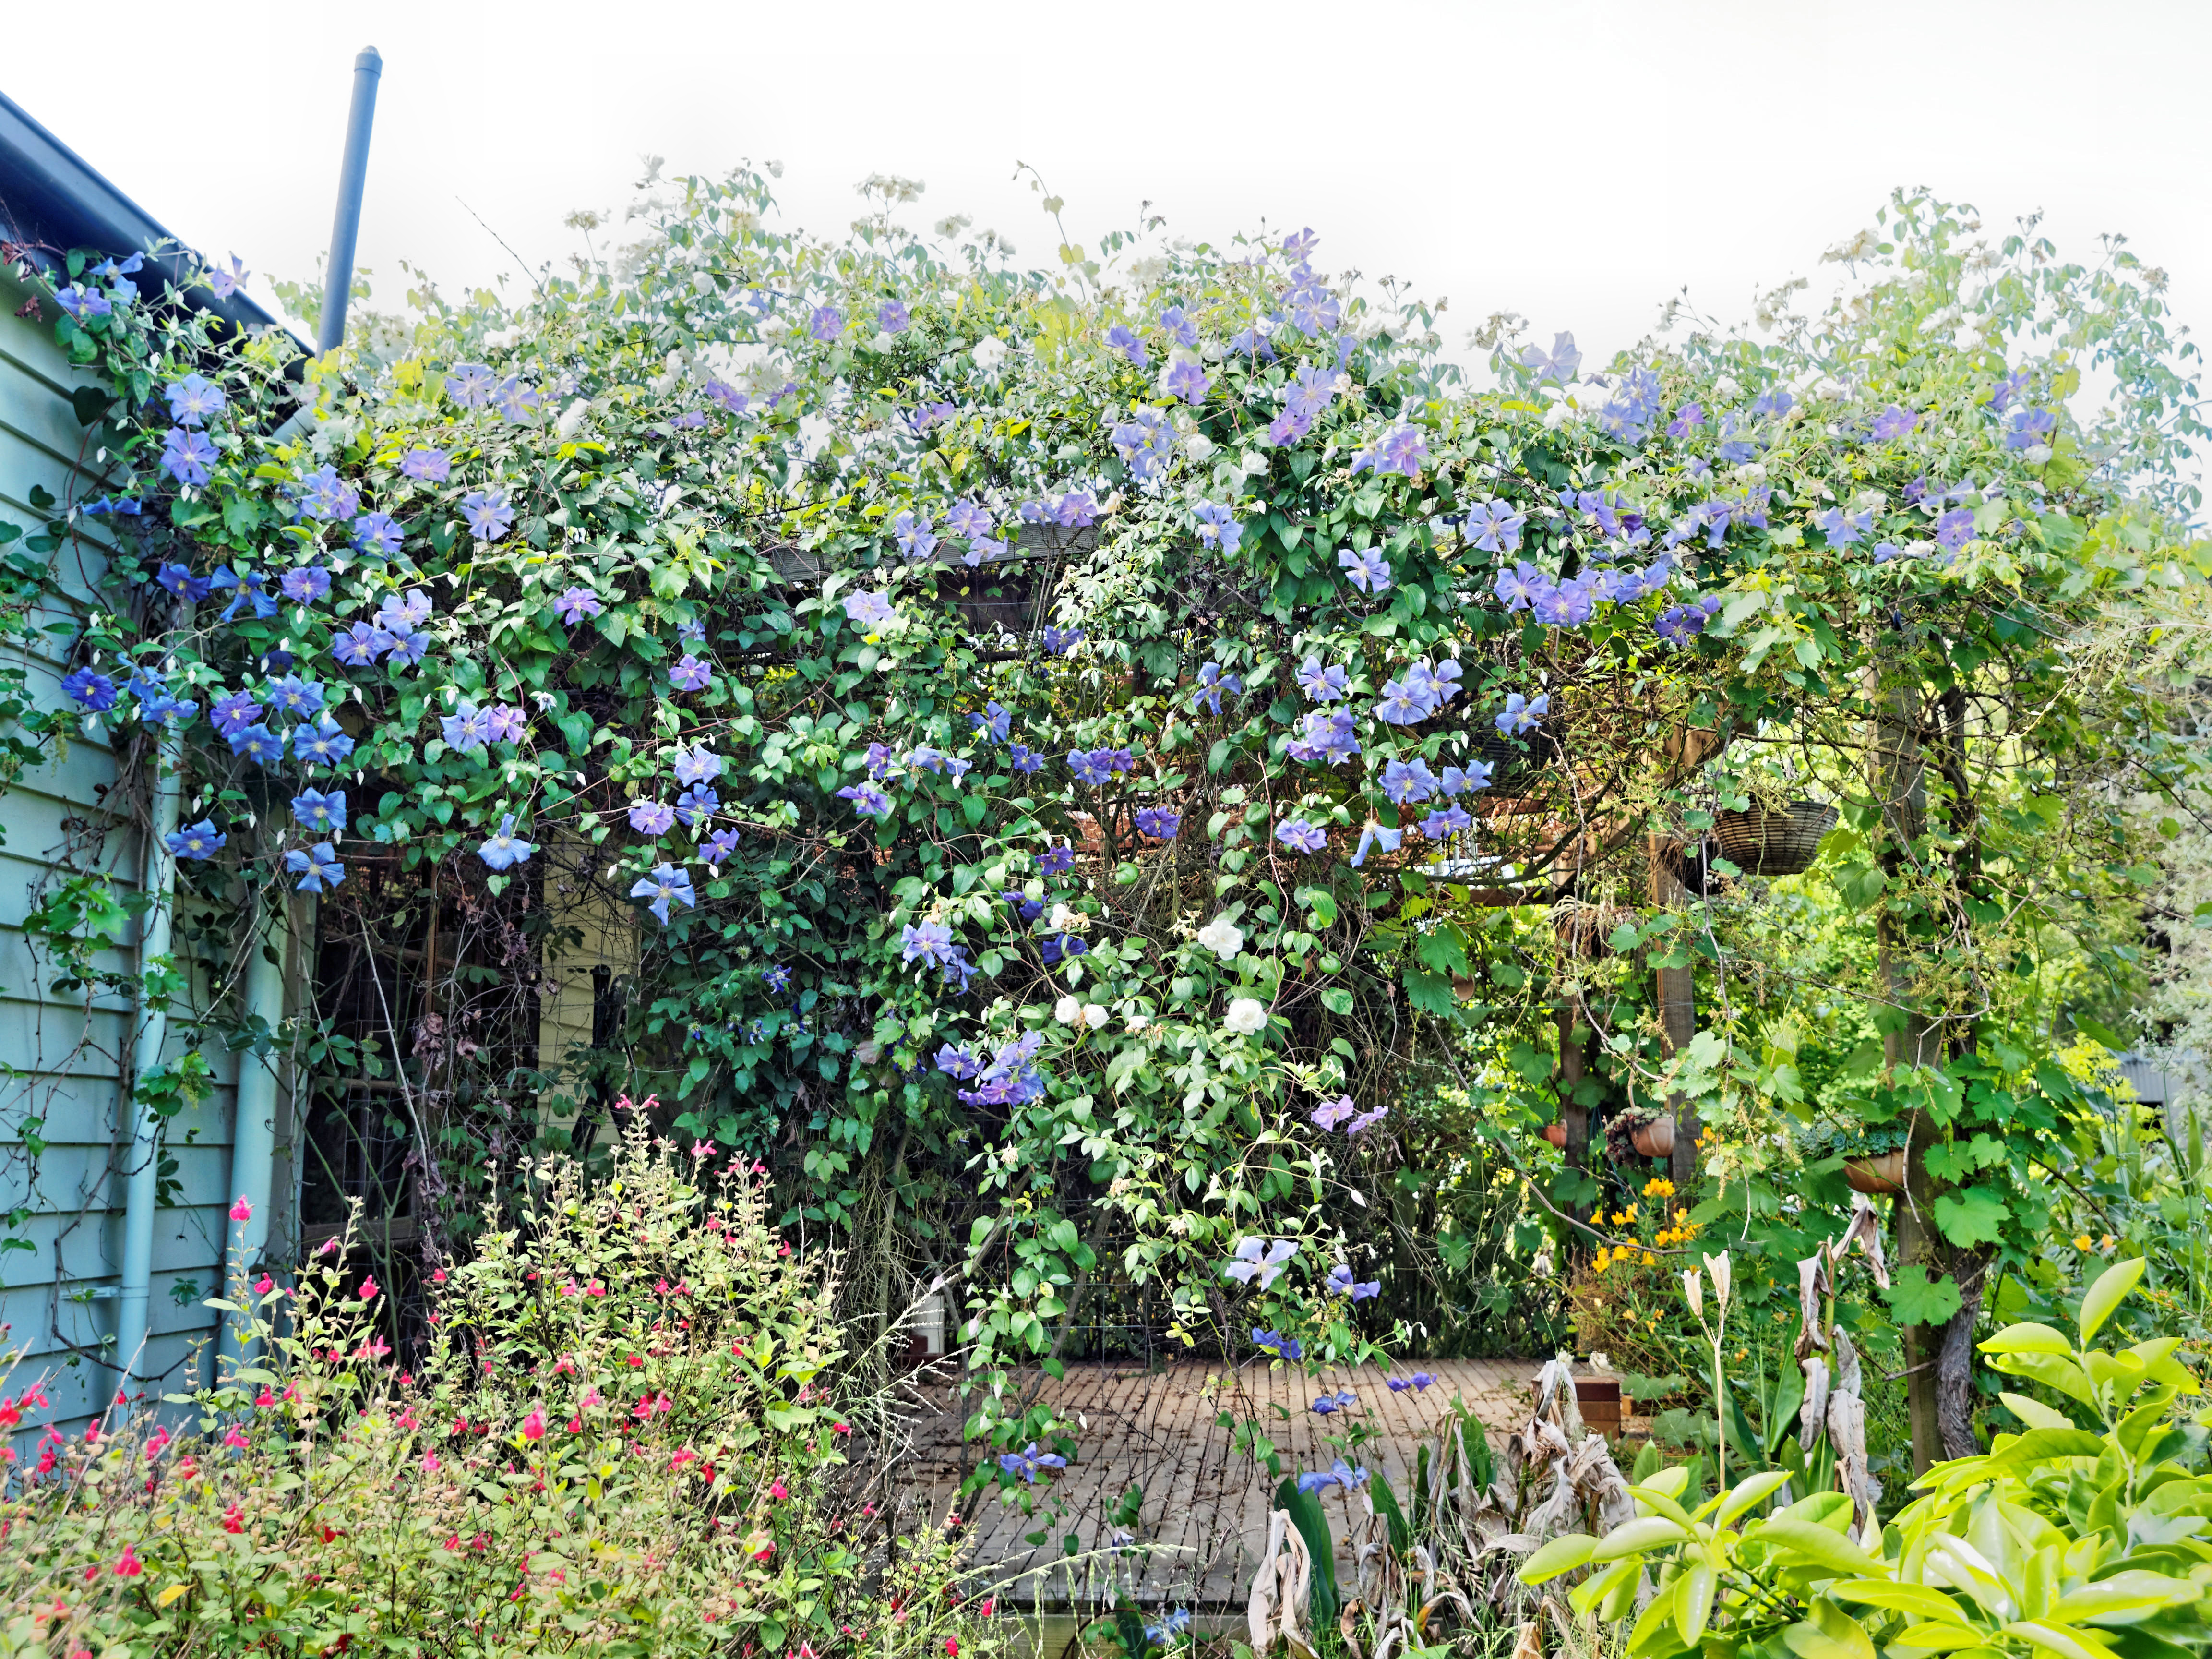 This should be Rose-Clematis.jpeg.  Is it missing?